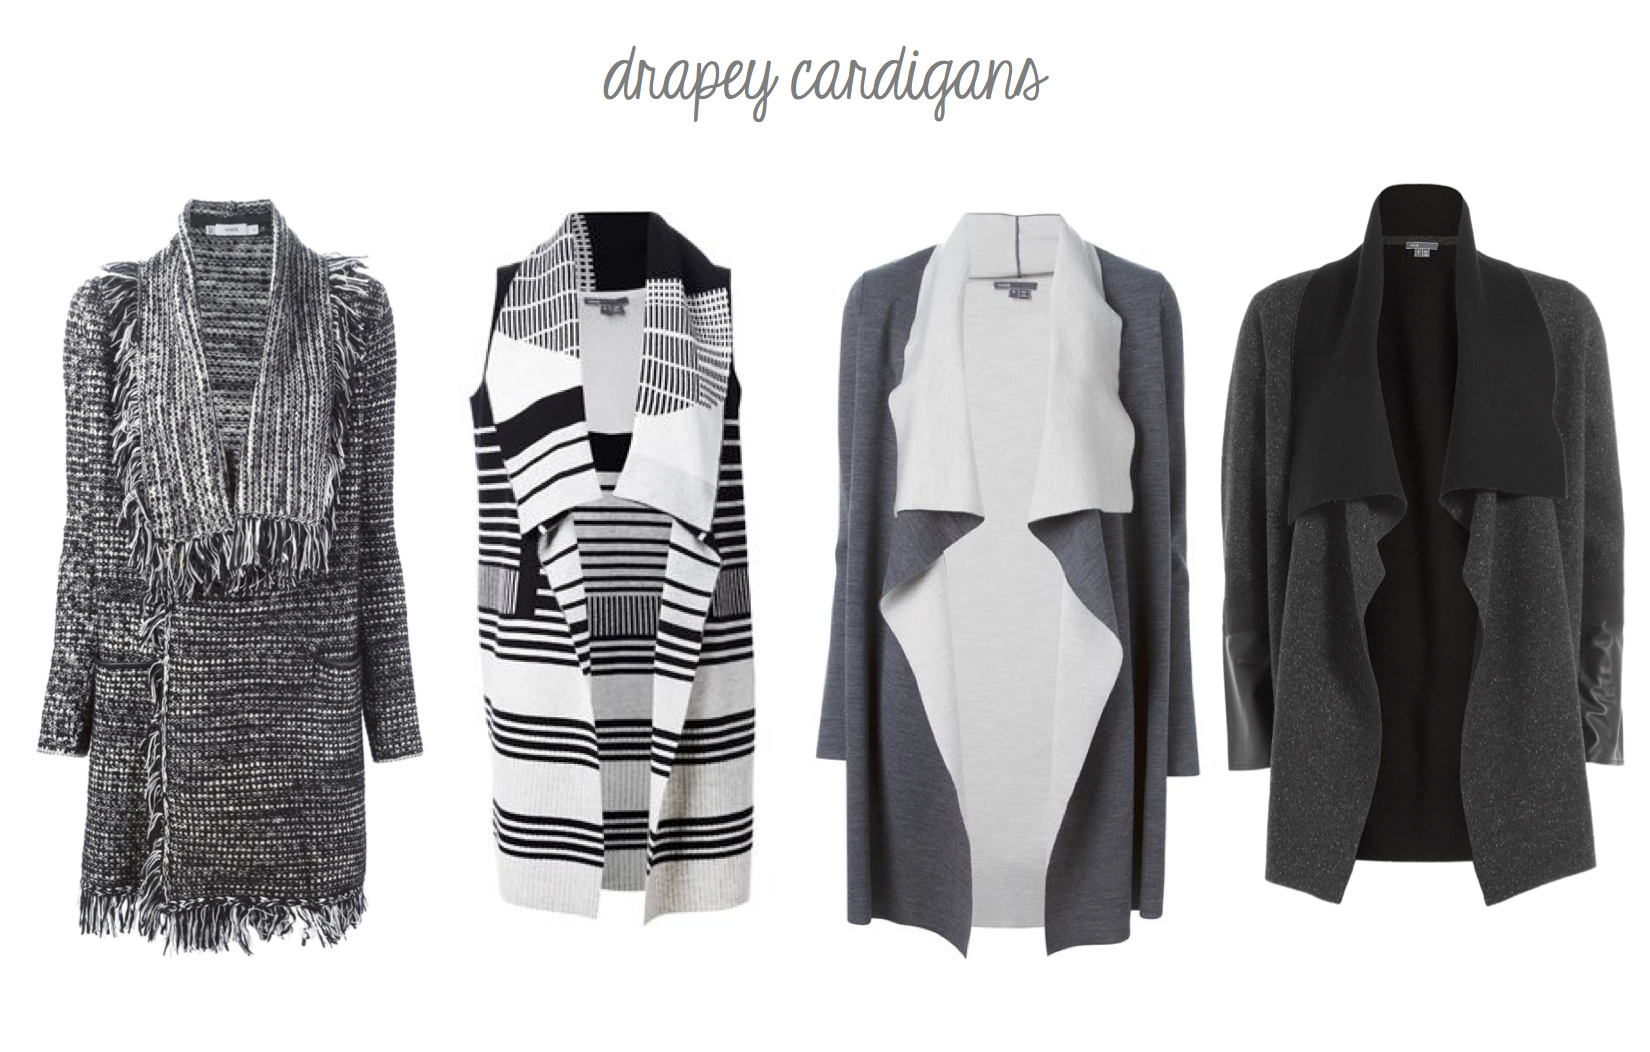 drapey cardigans for fall.jpg